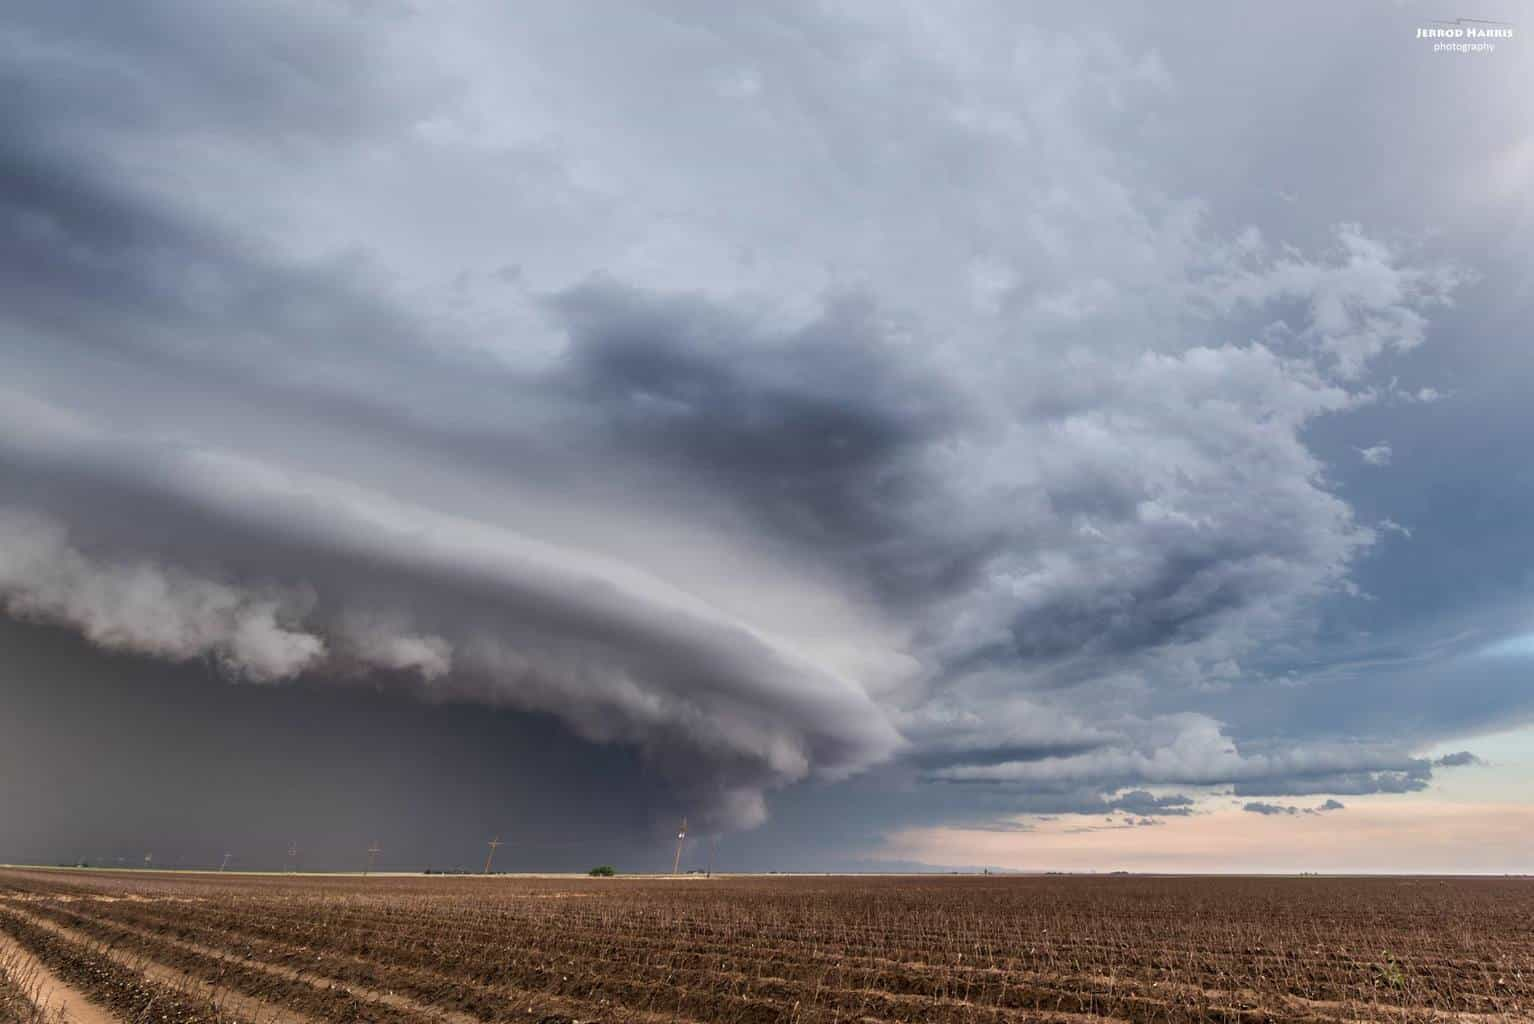 A shelf cloud stretches out across some freshly cleared fields moments after a tornado lifted in May of 2015 just south of Lubbock, TX.